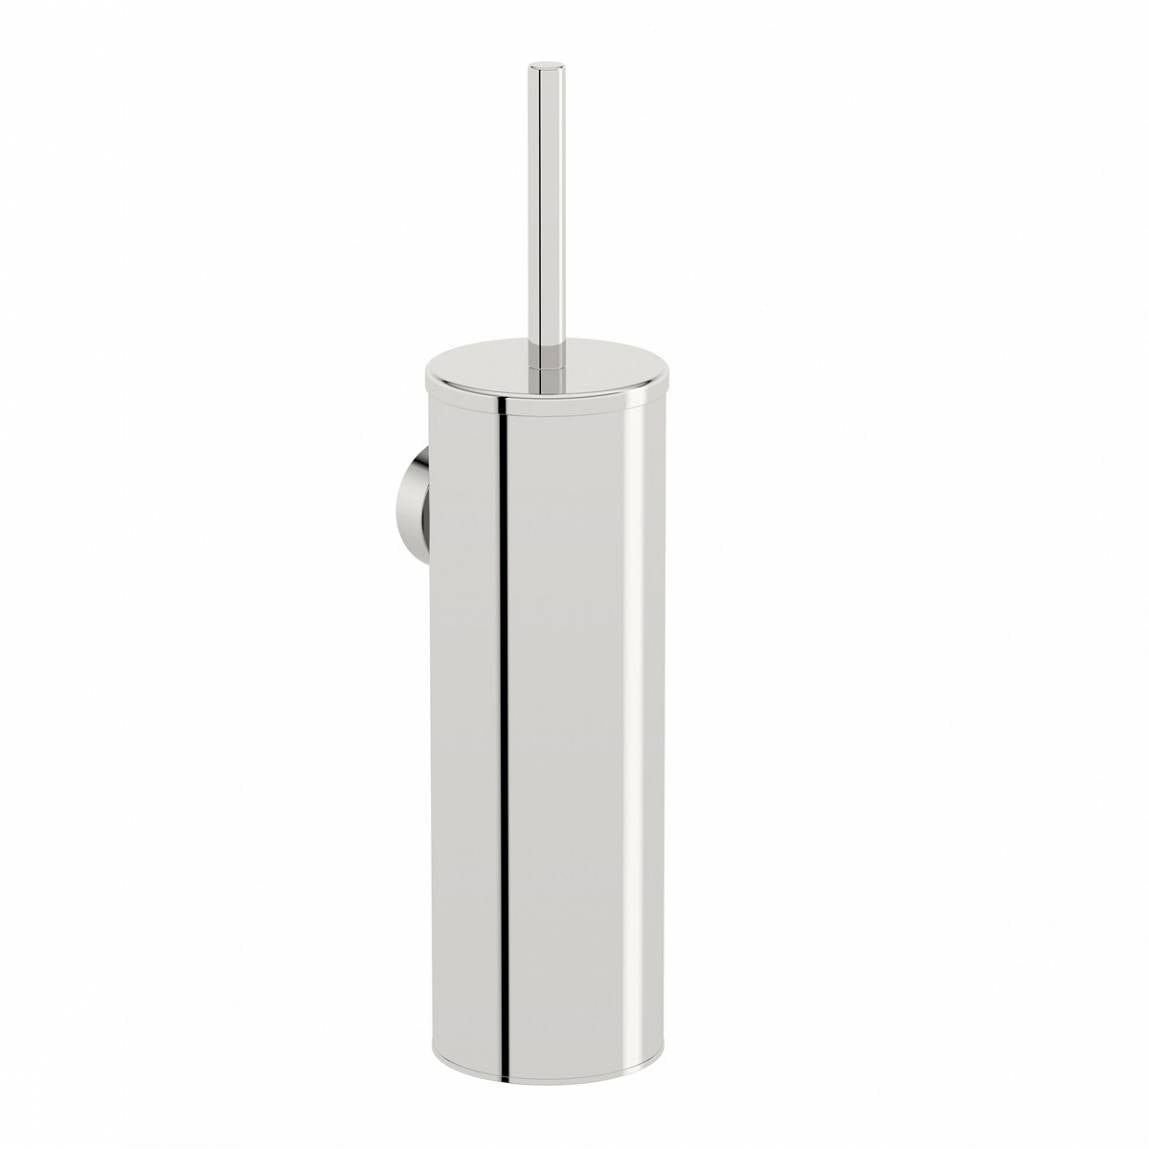 Options Wall Mounted Stainless Steel Toilet Brush Holder